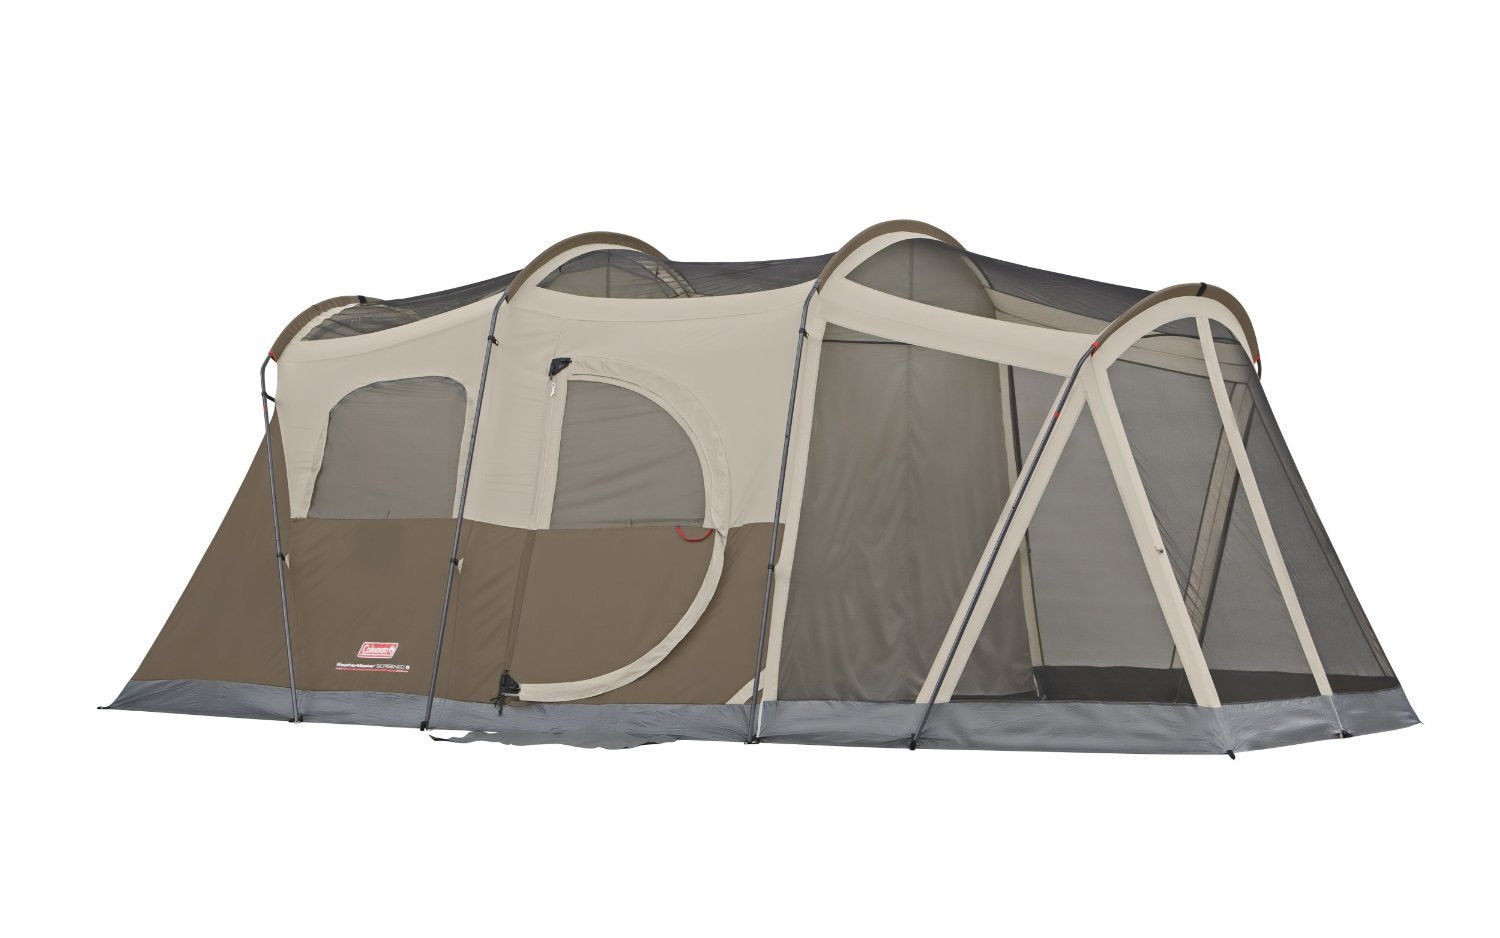 Screened 6-Person 2 Room 2 Door Camping Cabin Tent  Hiking Electric Access Port